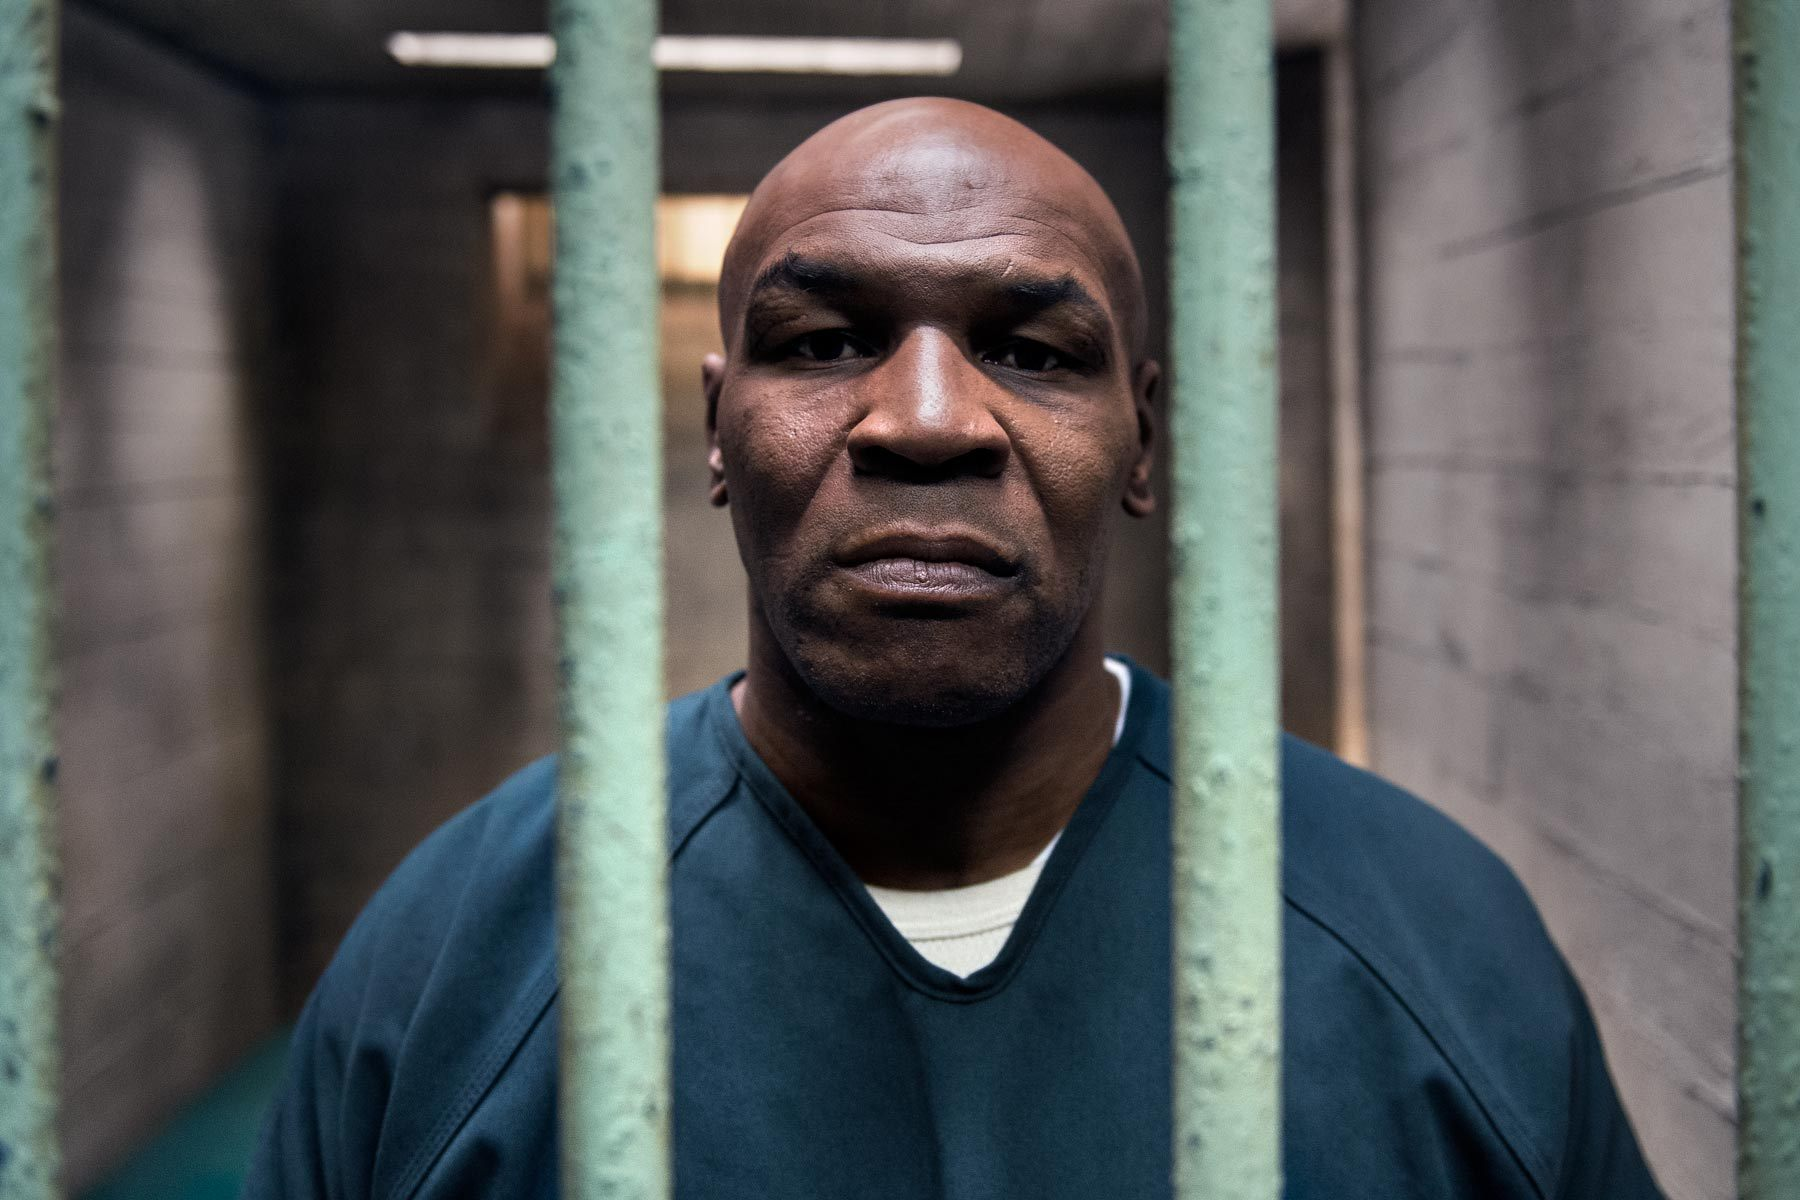 Mike Tyson Hoax Shot Down by Reps, Chef Roble Ali